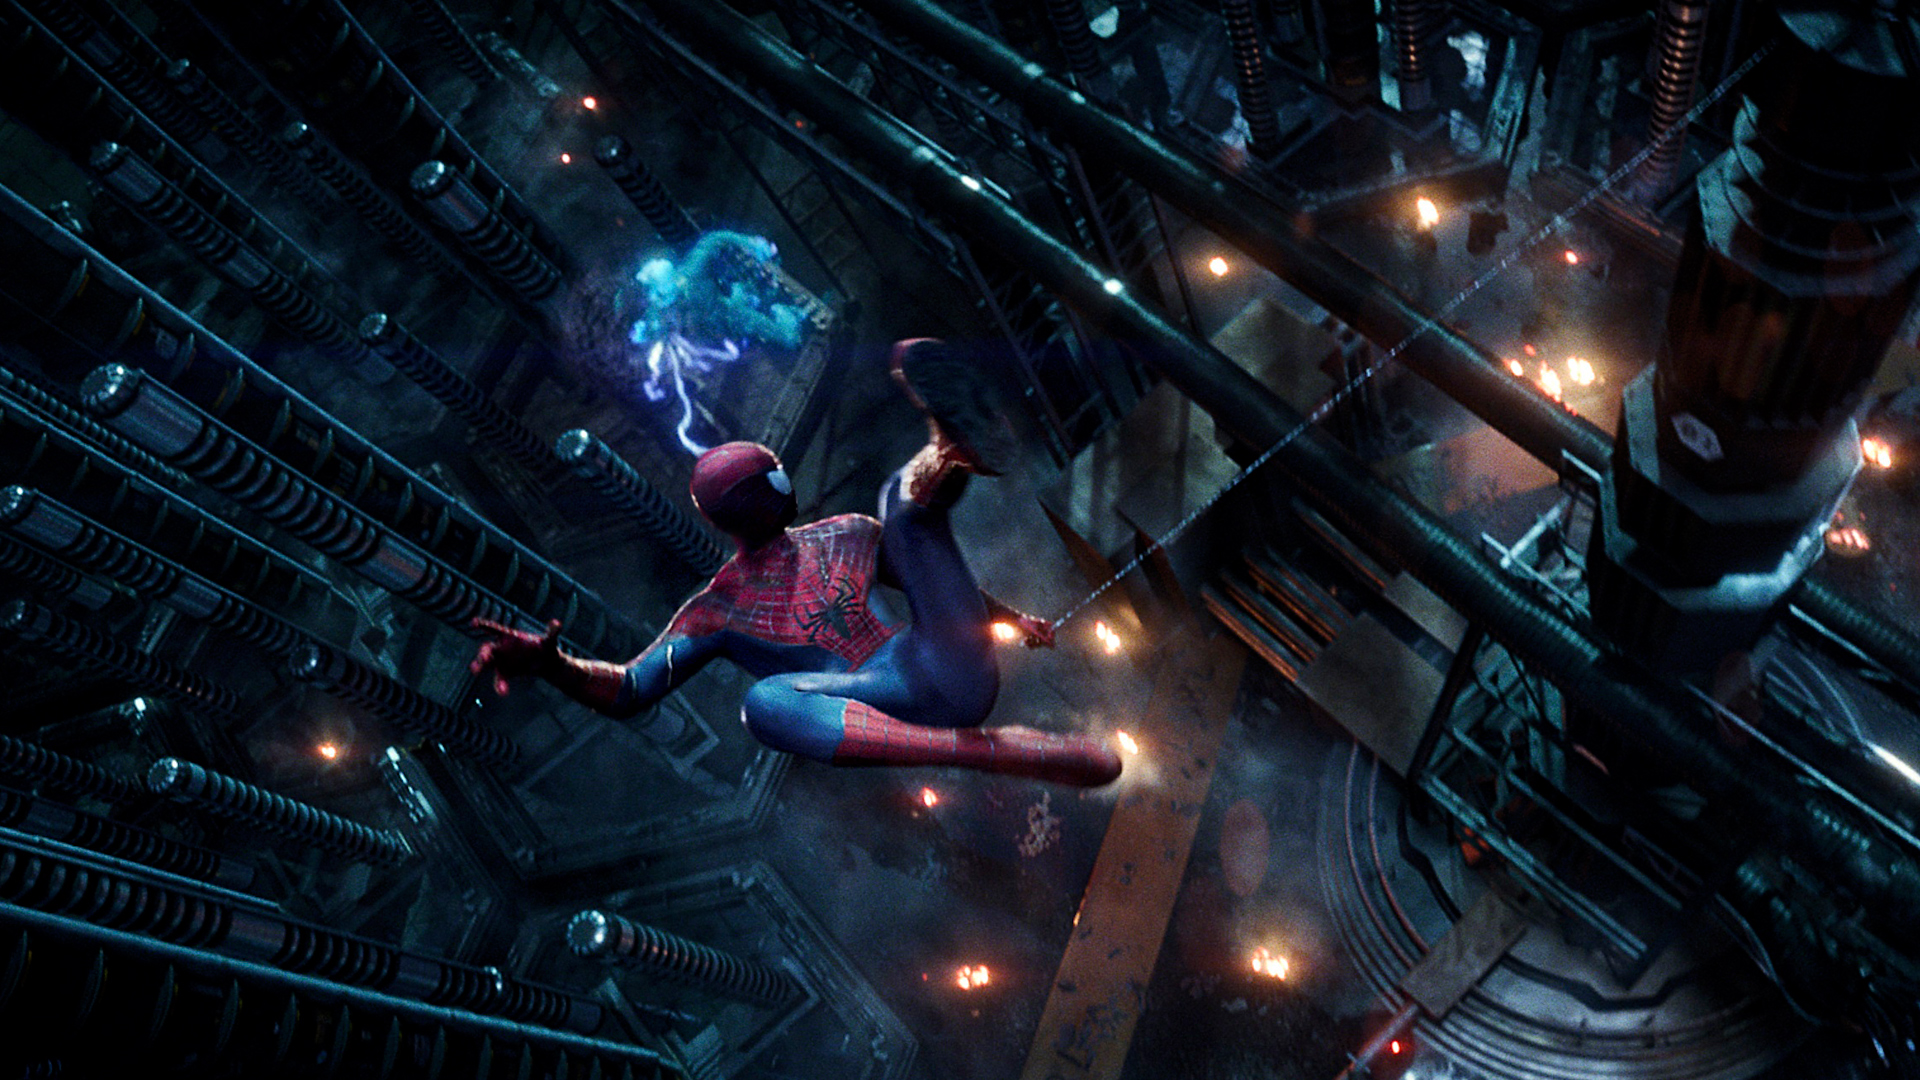 Go Back Images For Spiderman 4 Wallpaper Hd 1080p 1920x1080